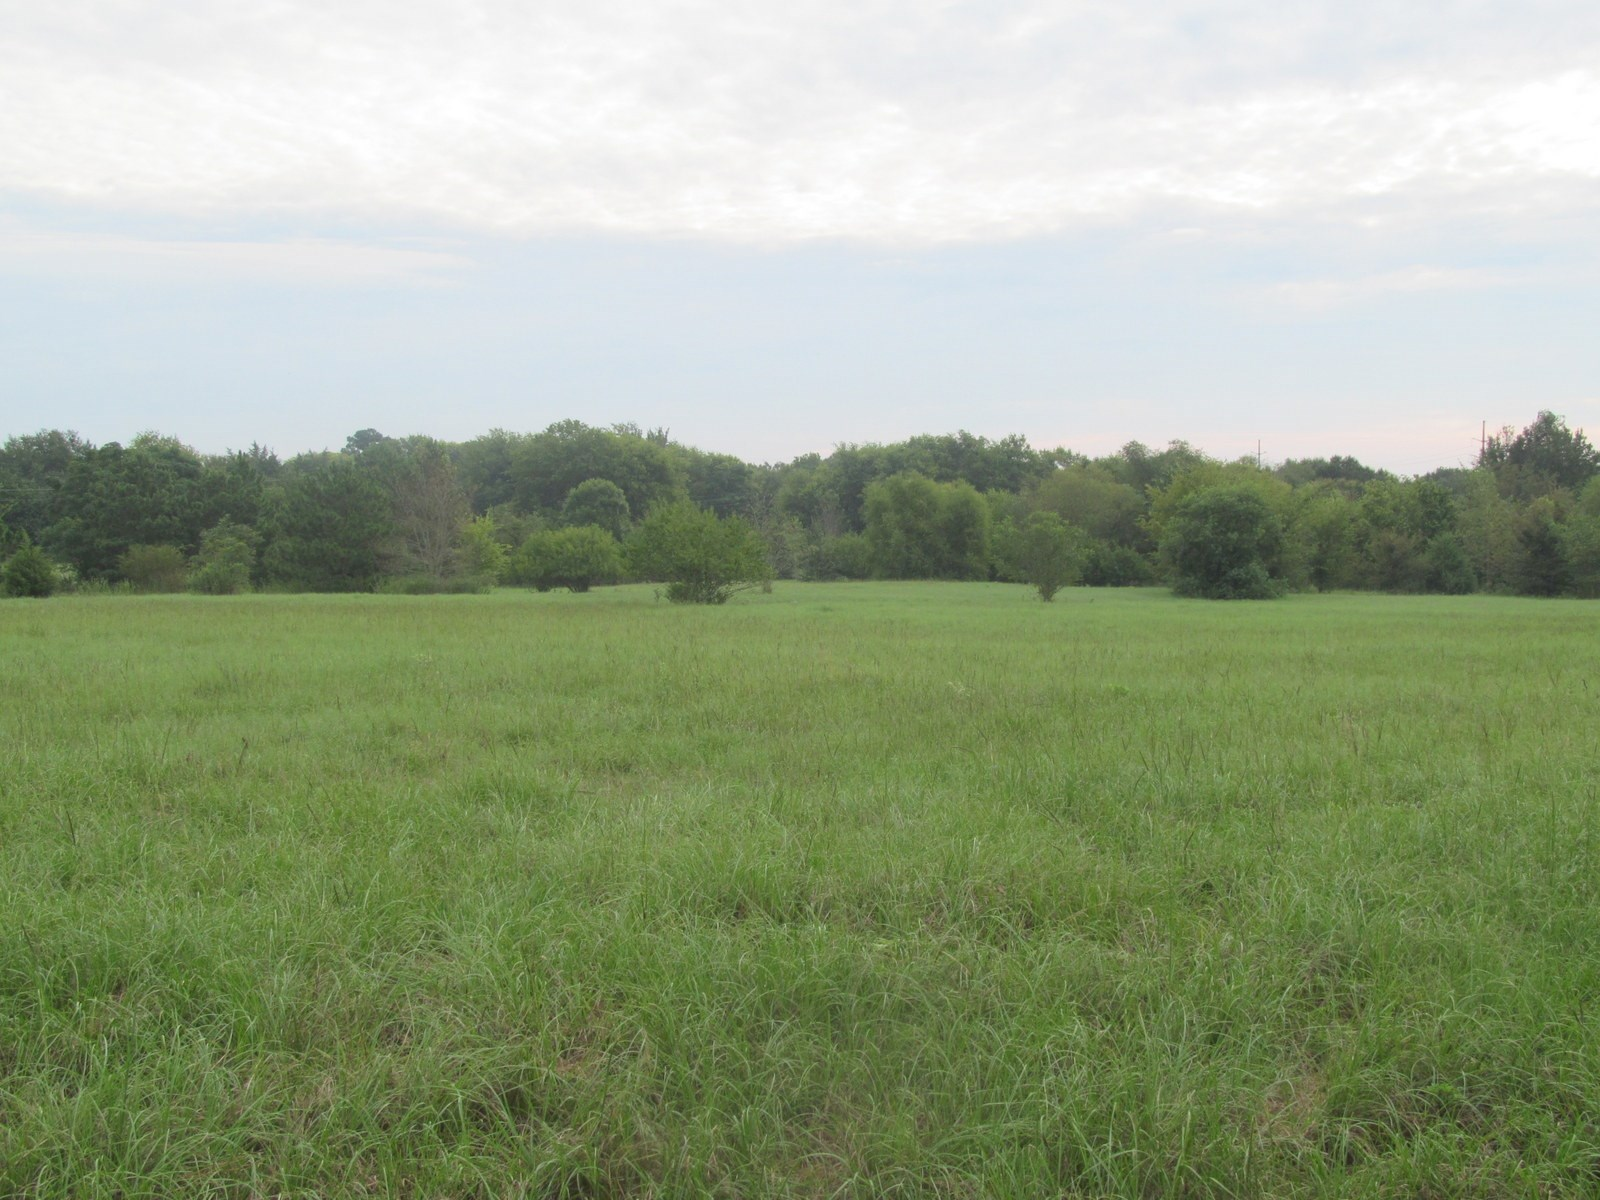 17 ACRES IN WOOD COUNTY TEXAS - WINNSBORO LAND FOR SALE